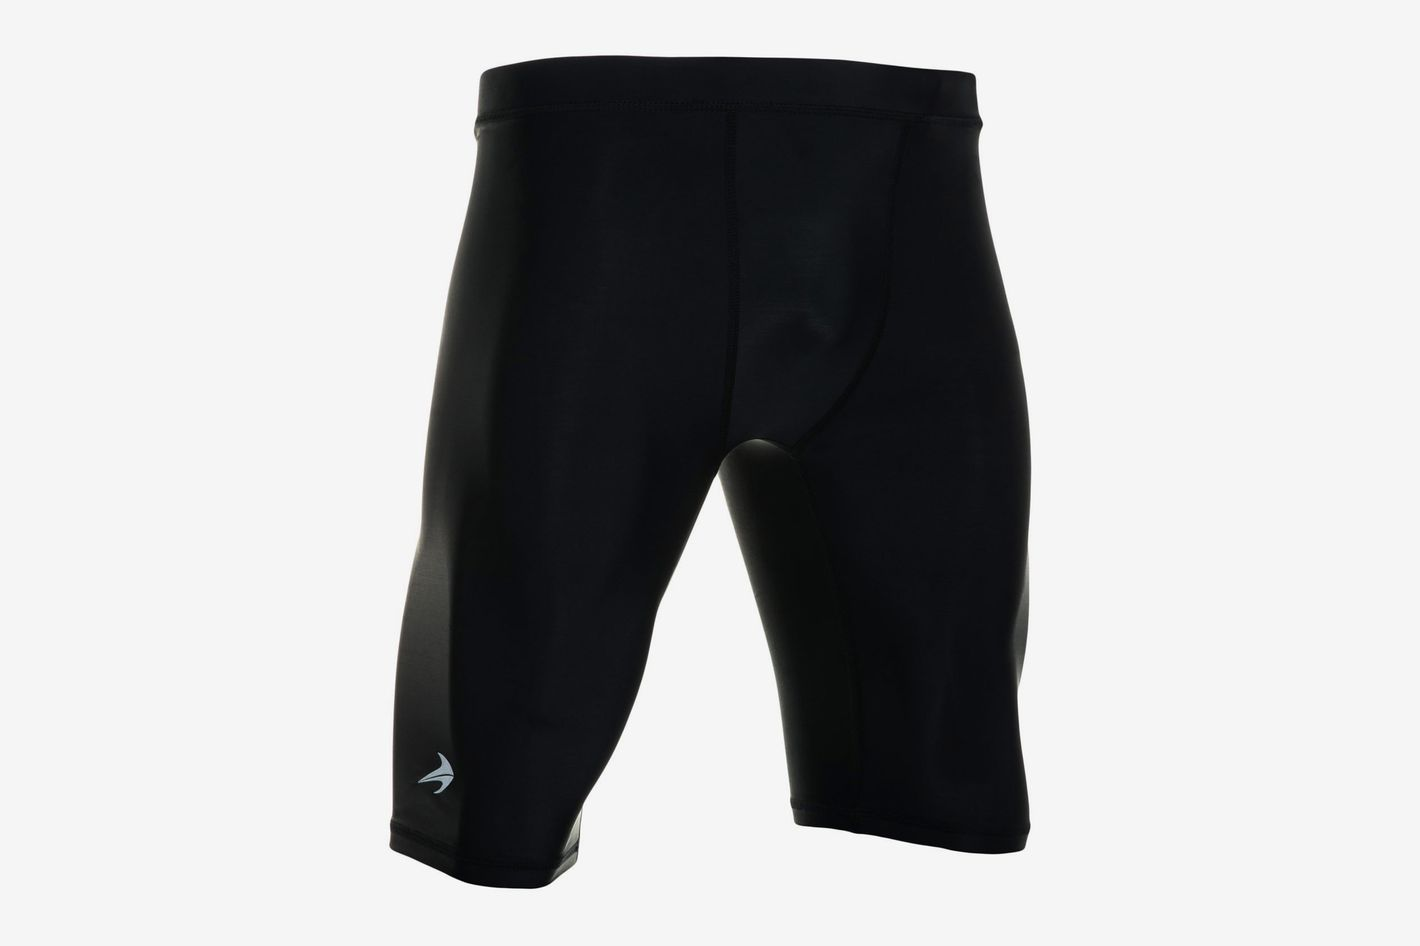 CompressionZ Men's Compression Shorts